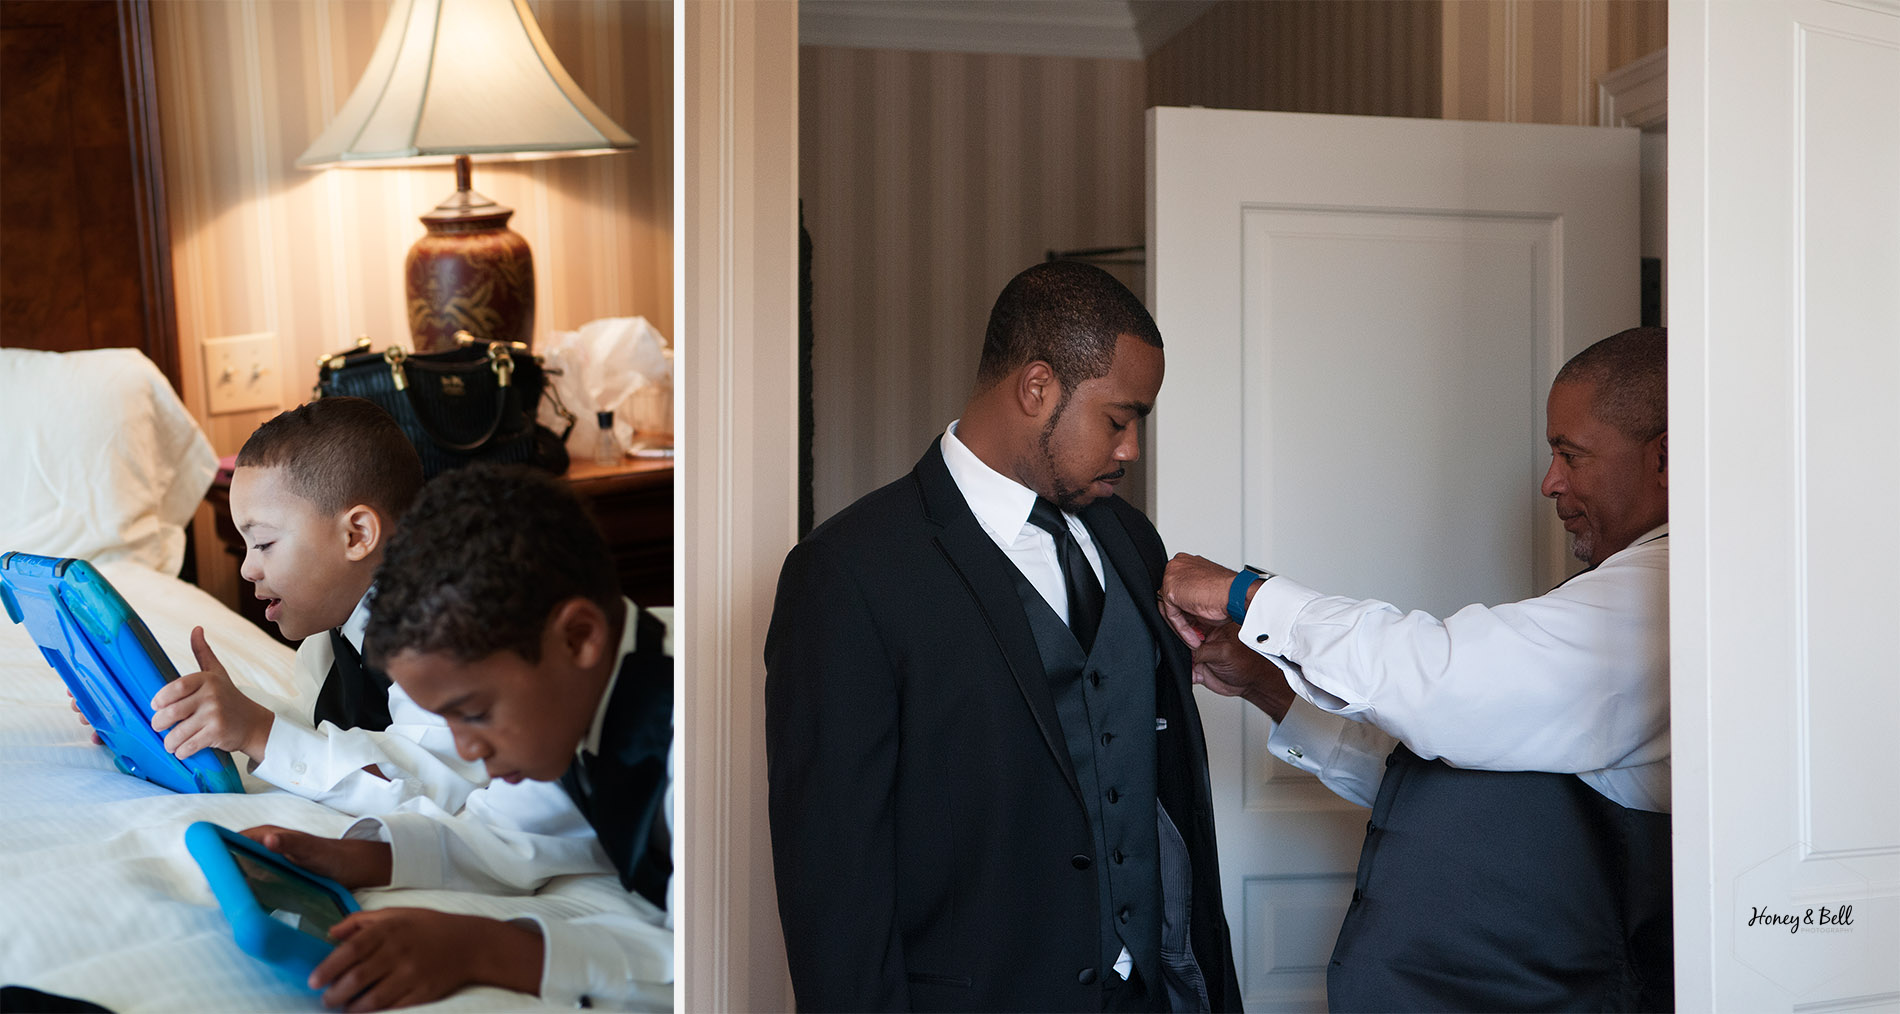 fields-wedding-rochester-michigan-detroit-wedding-photographer-royal-park-hotel-groom-getting-ready-18